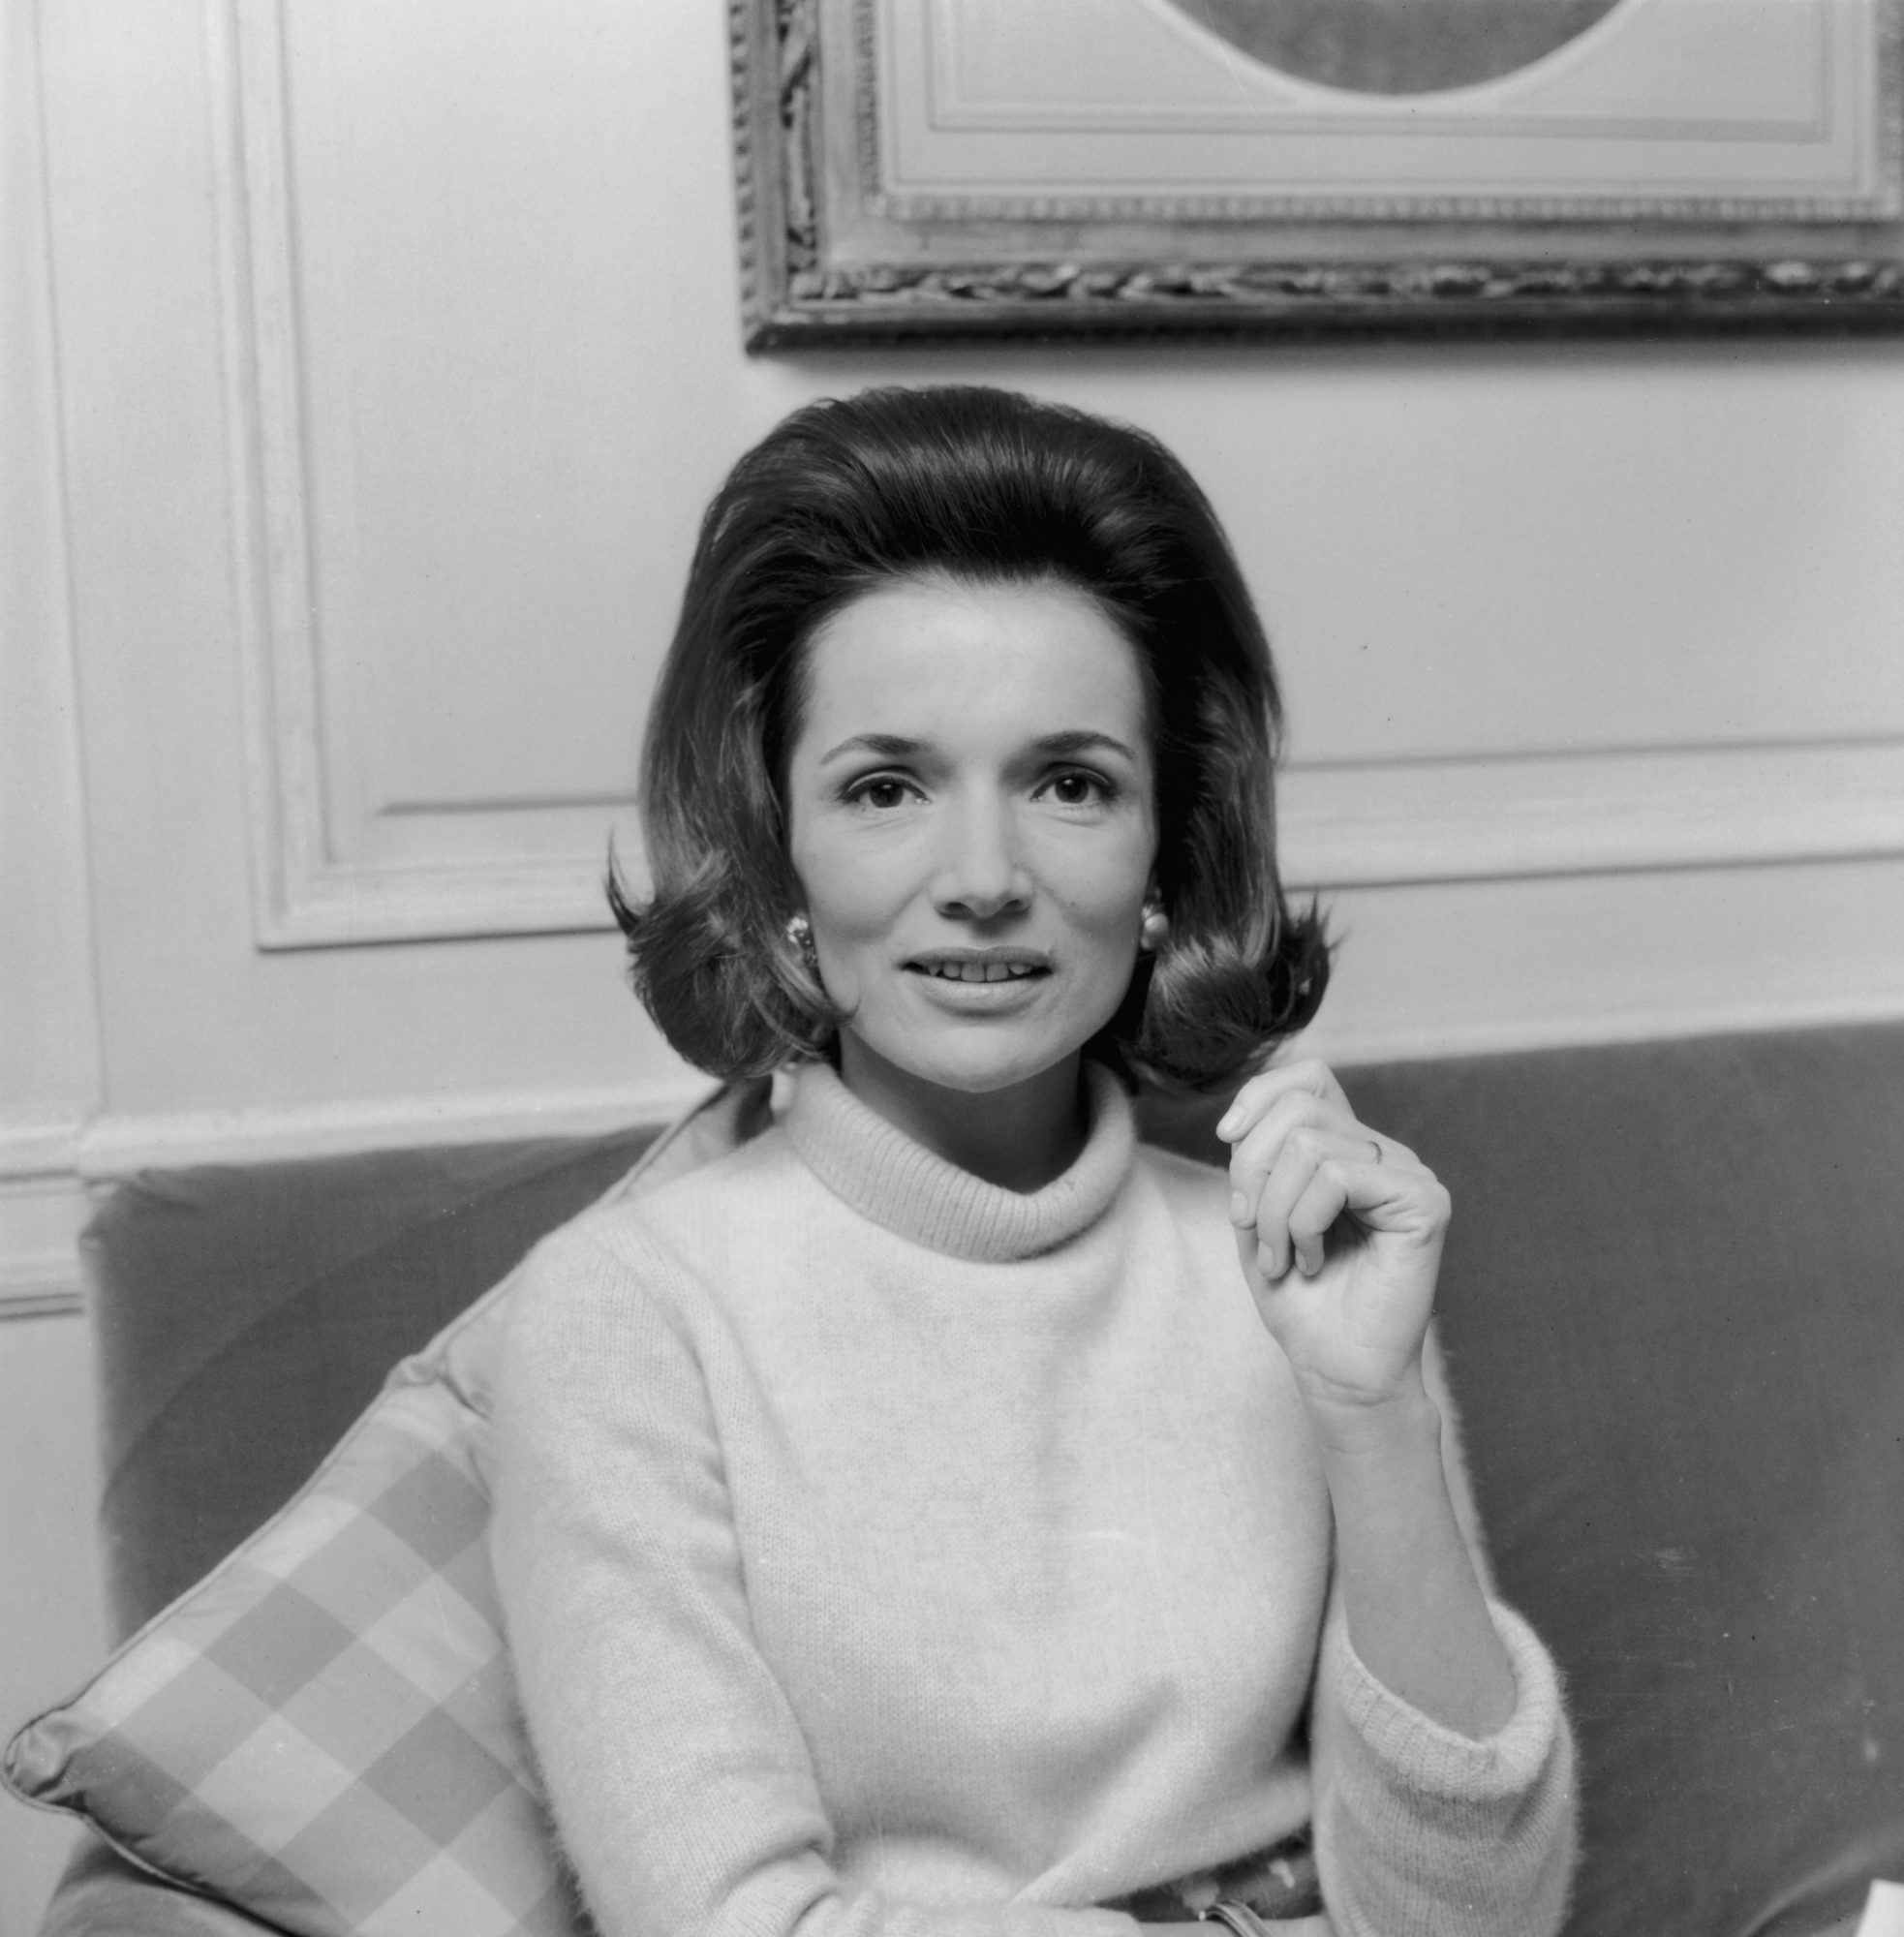 Jackie Kennedy's Younger Sister Lee Radziwill Dies at Age 85